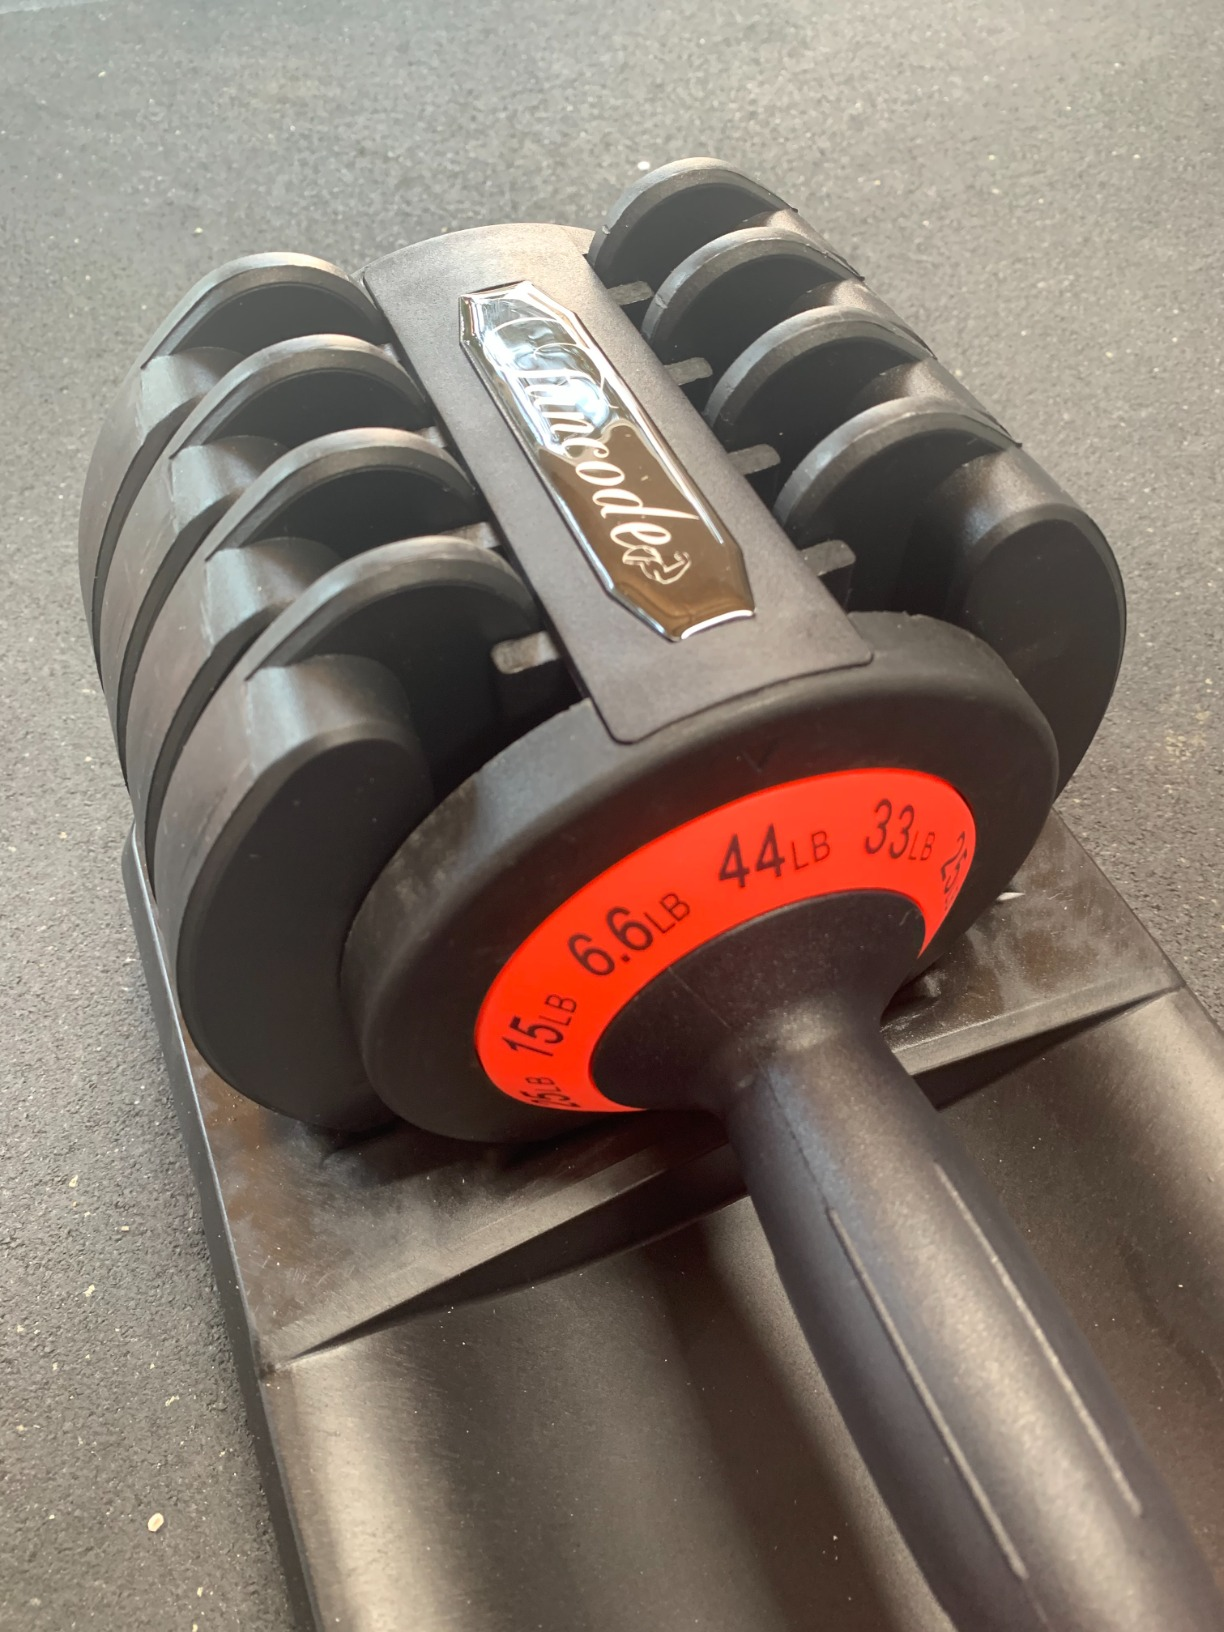 Funcode Adjustable Dumbbell 44 or 88 Lb, Multiweight Options, Anti-Slip Handle, All-Purpose, Home, Gym, Office… photo review